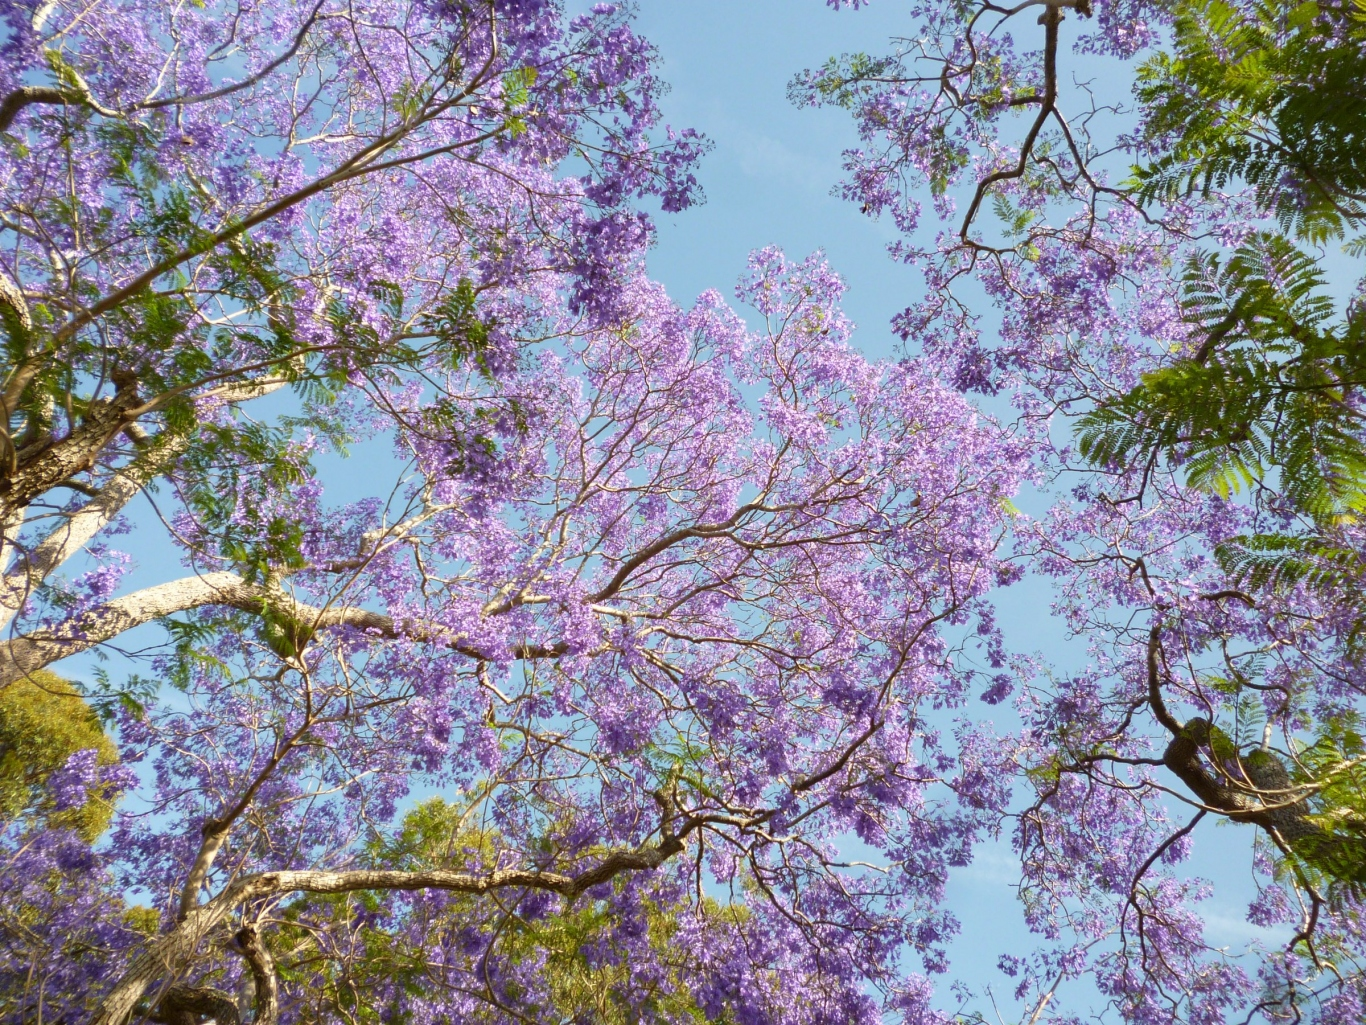 Photograph of a canopy of jacaranda.